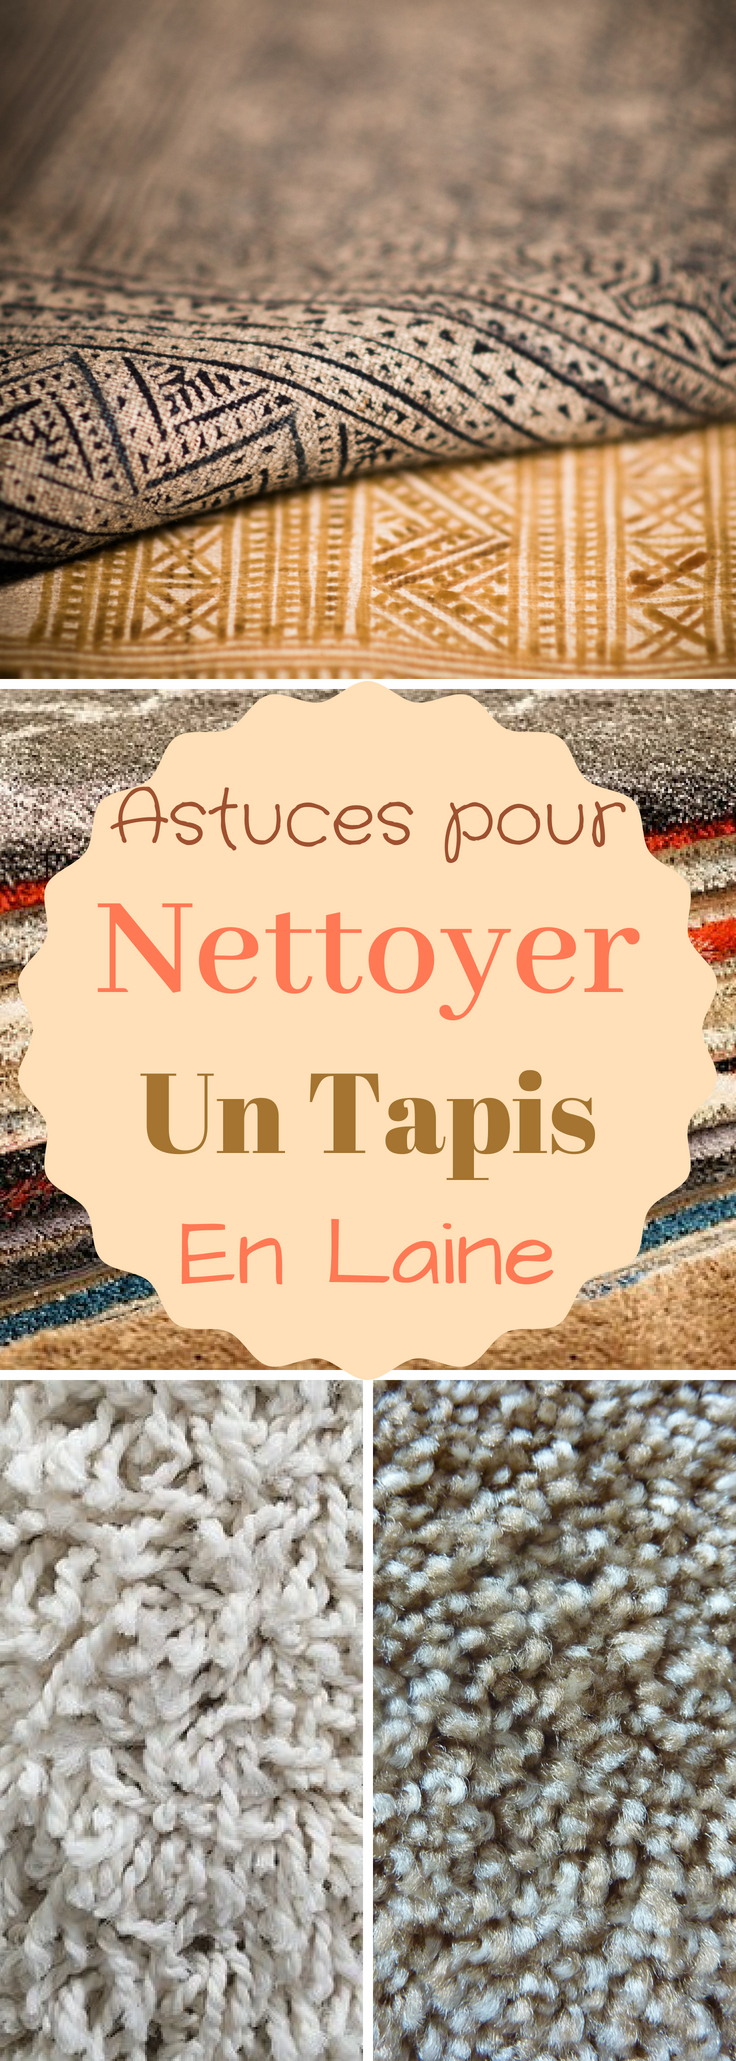 astuces comment nettoyer un tapis en laine astuces. Black Bedroom Furniture Sets. Home Design Ideas